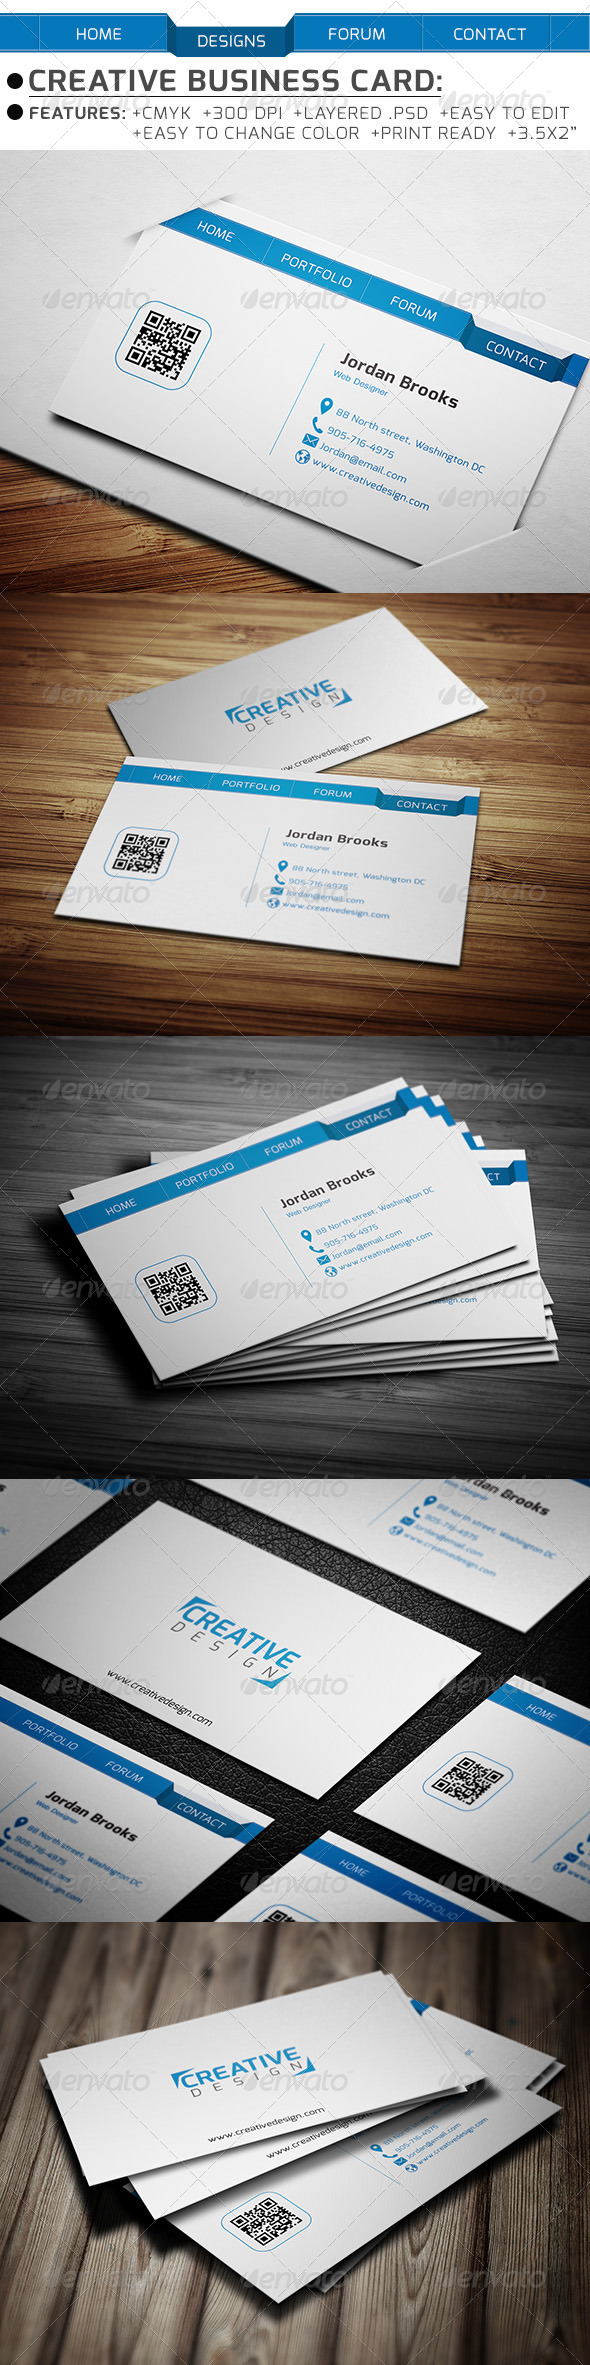 GraphicRiver Creative Business Card 6353117